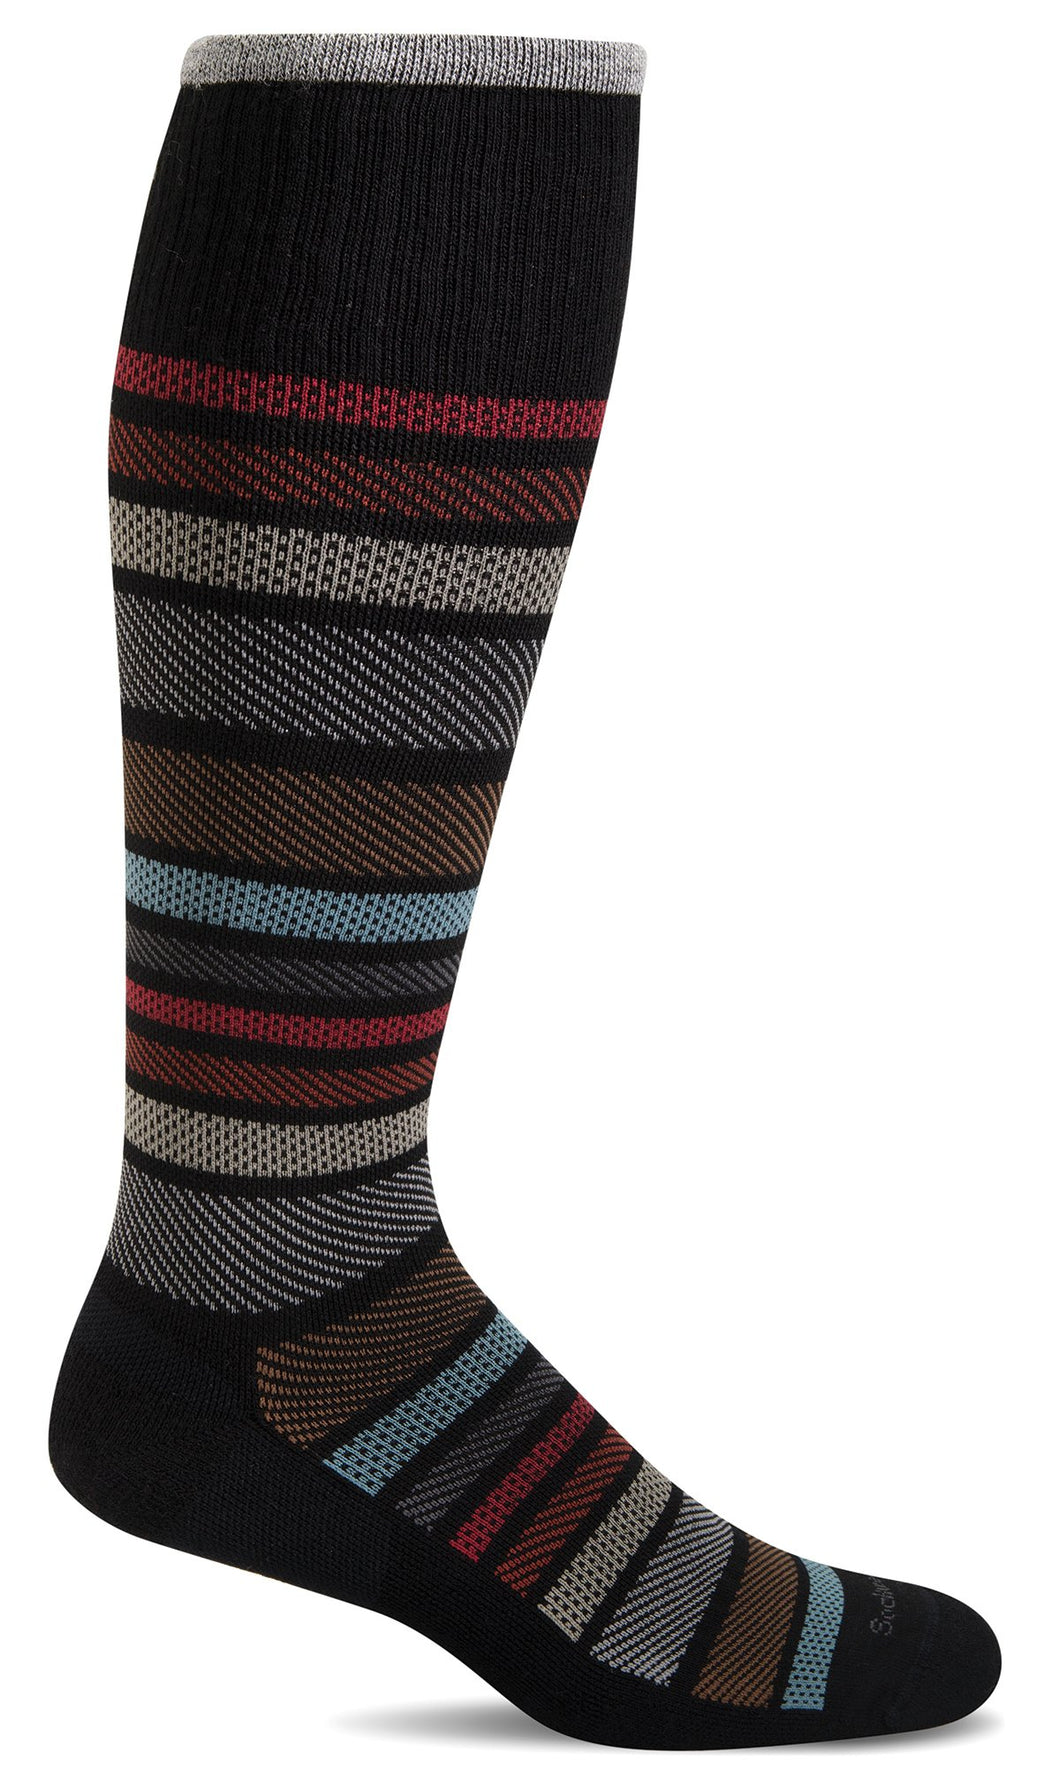 Sockwell Men's Twillful Graduated Compression Socks